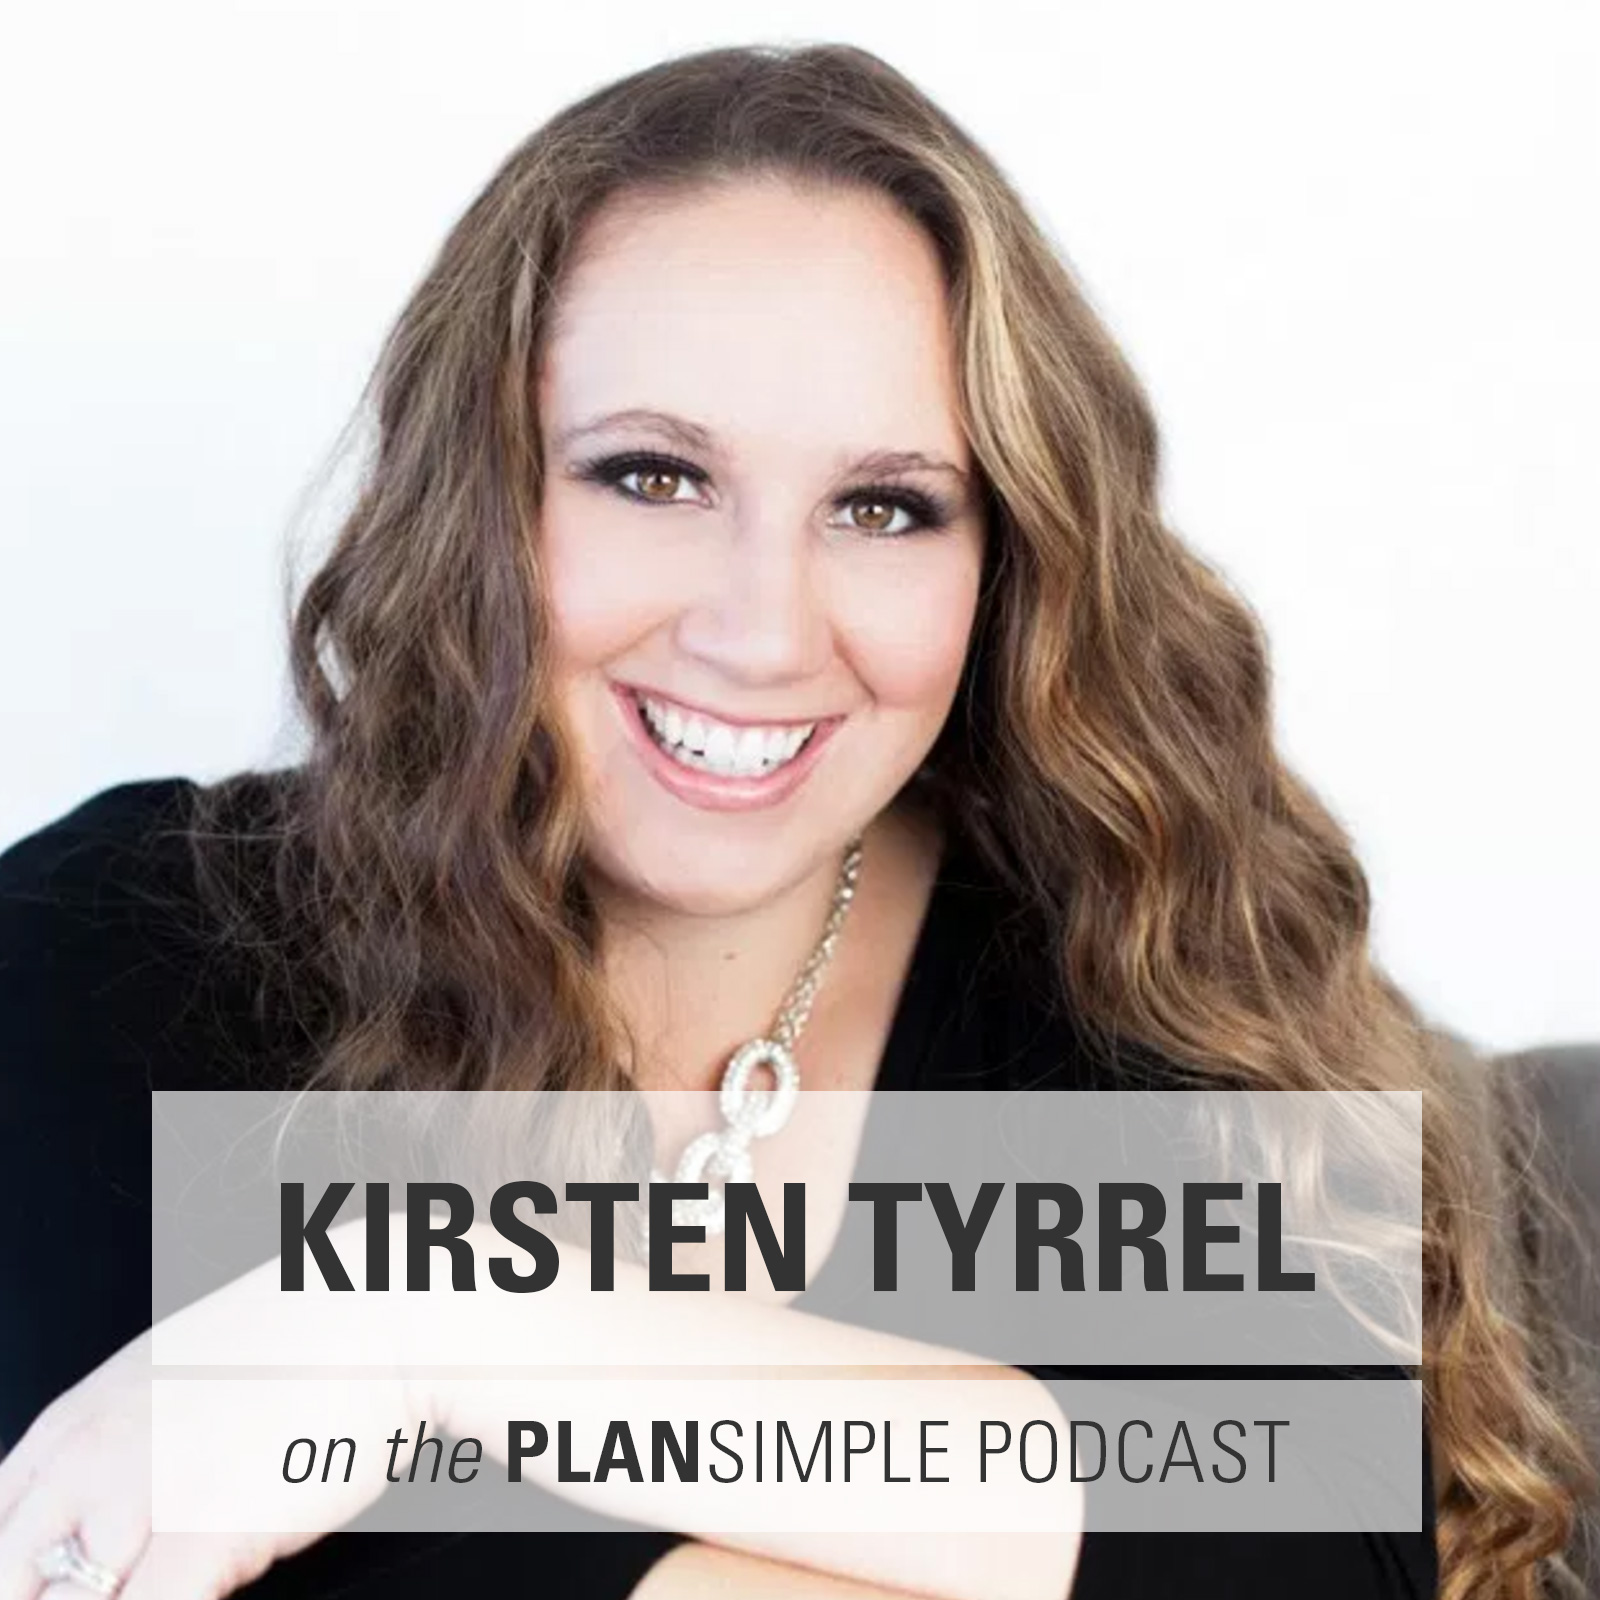 Be The Change With Kirsten Tyrrel